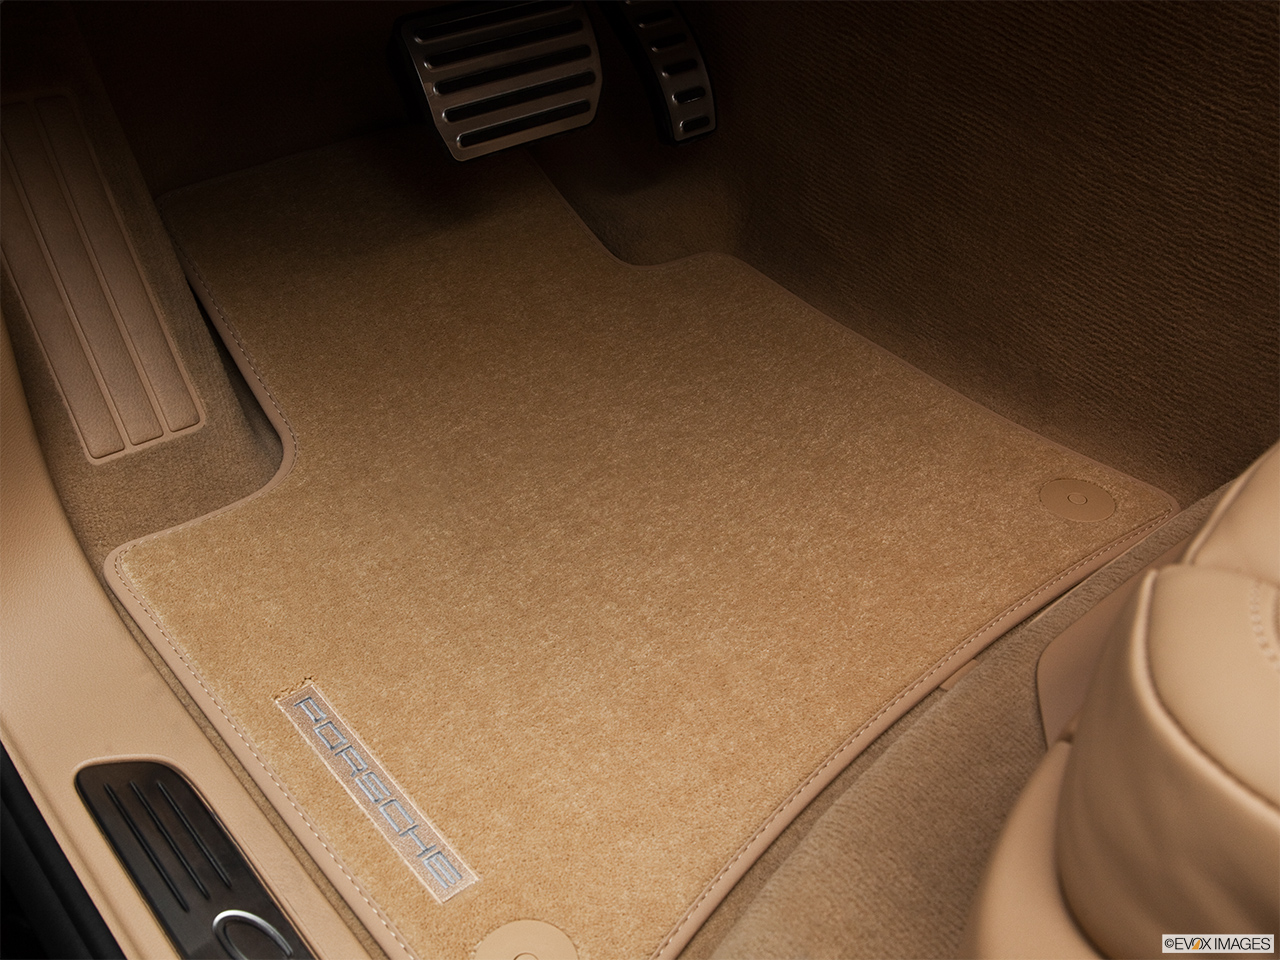 2012 Porsche Cayenne Hybrid Hybrid S Driver's floor mat and pedals. Mid-seat level from outside looking in.